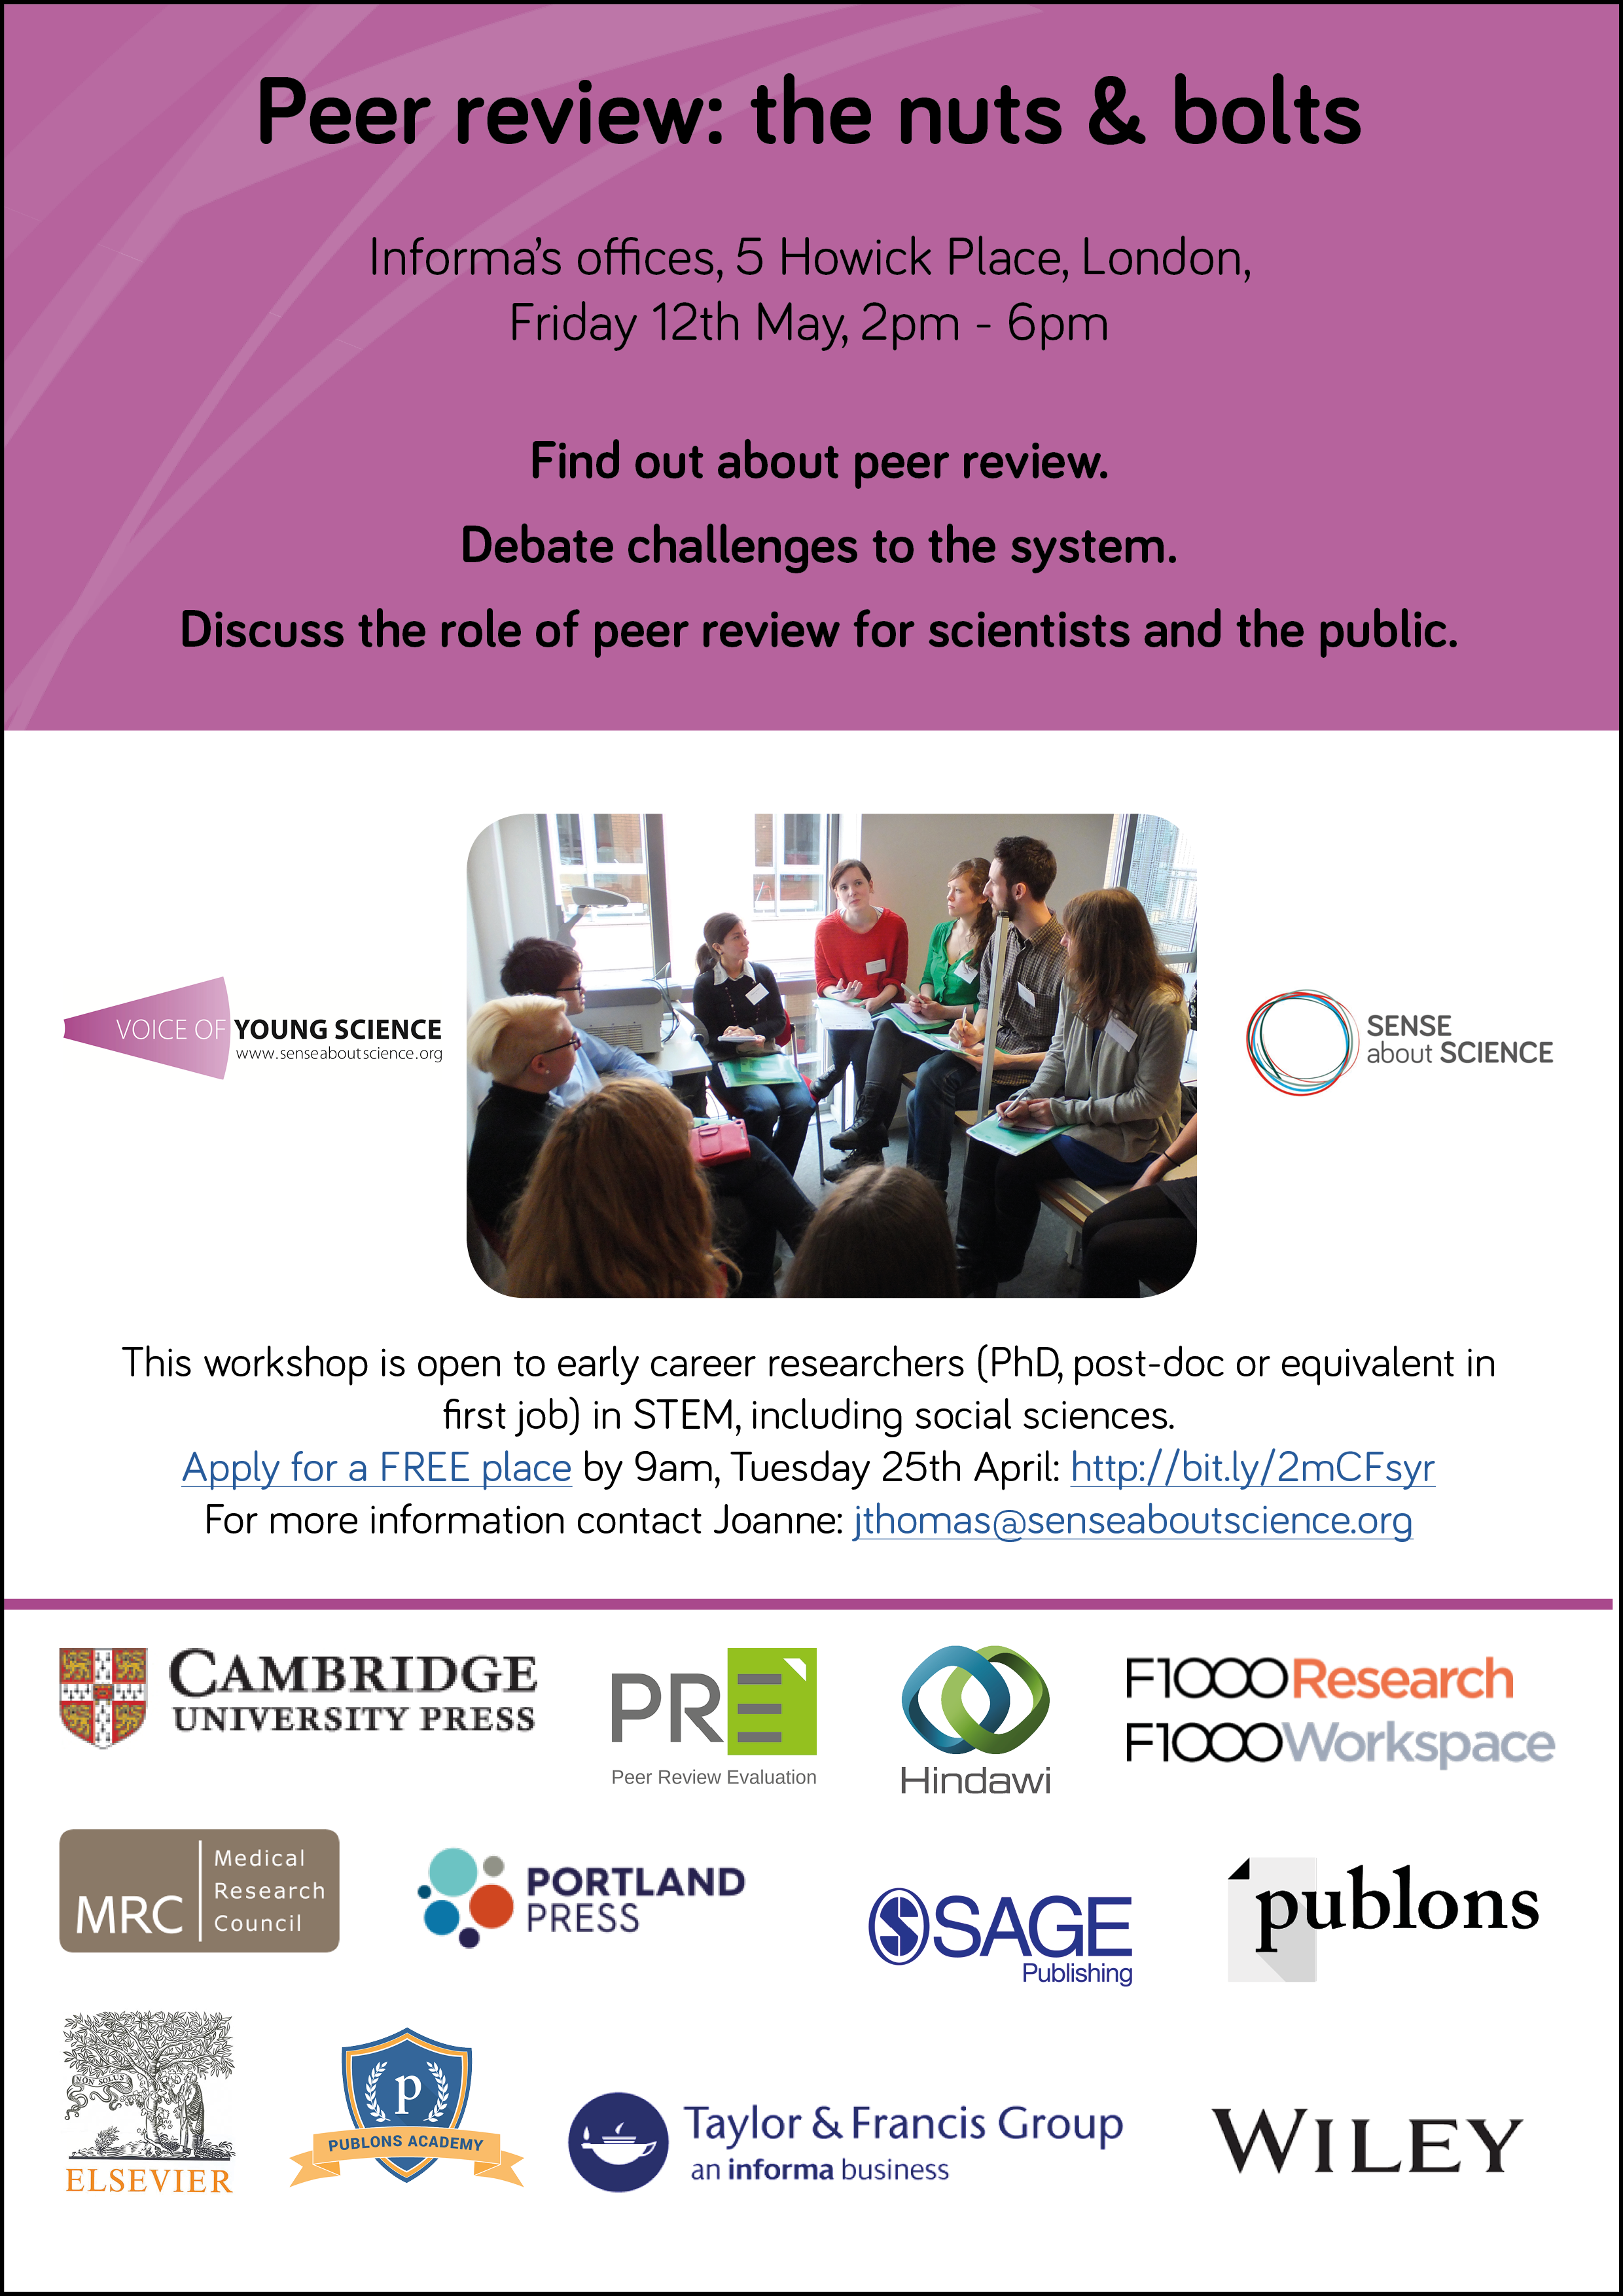 Peer Review workshop flyer 12th May